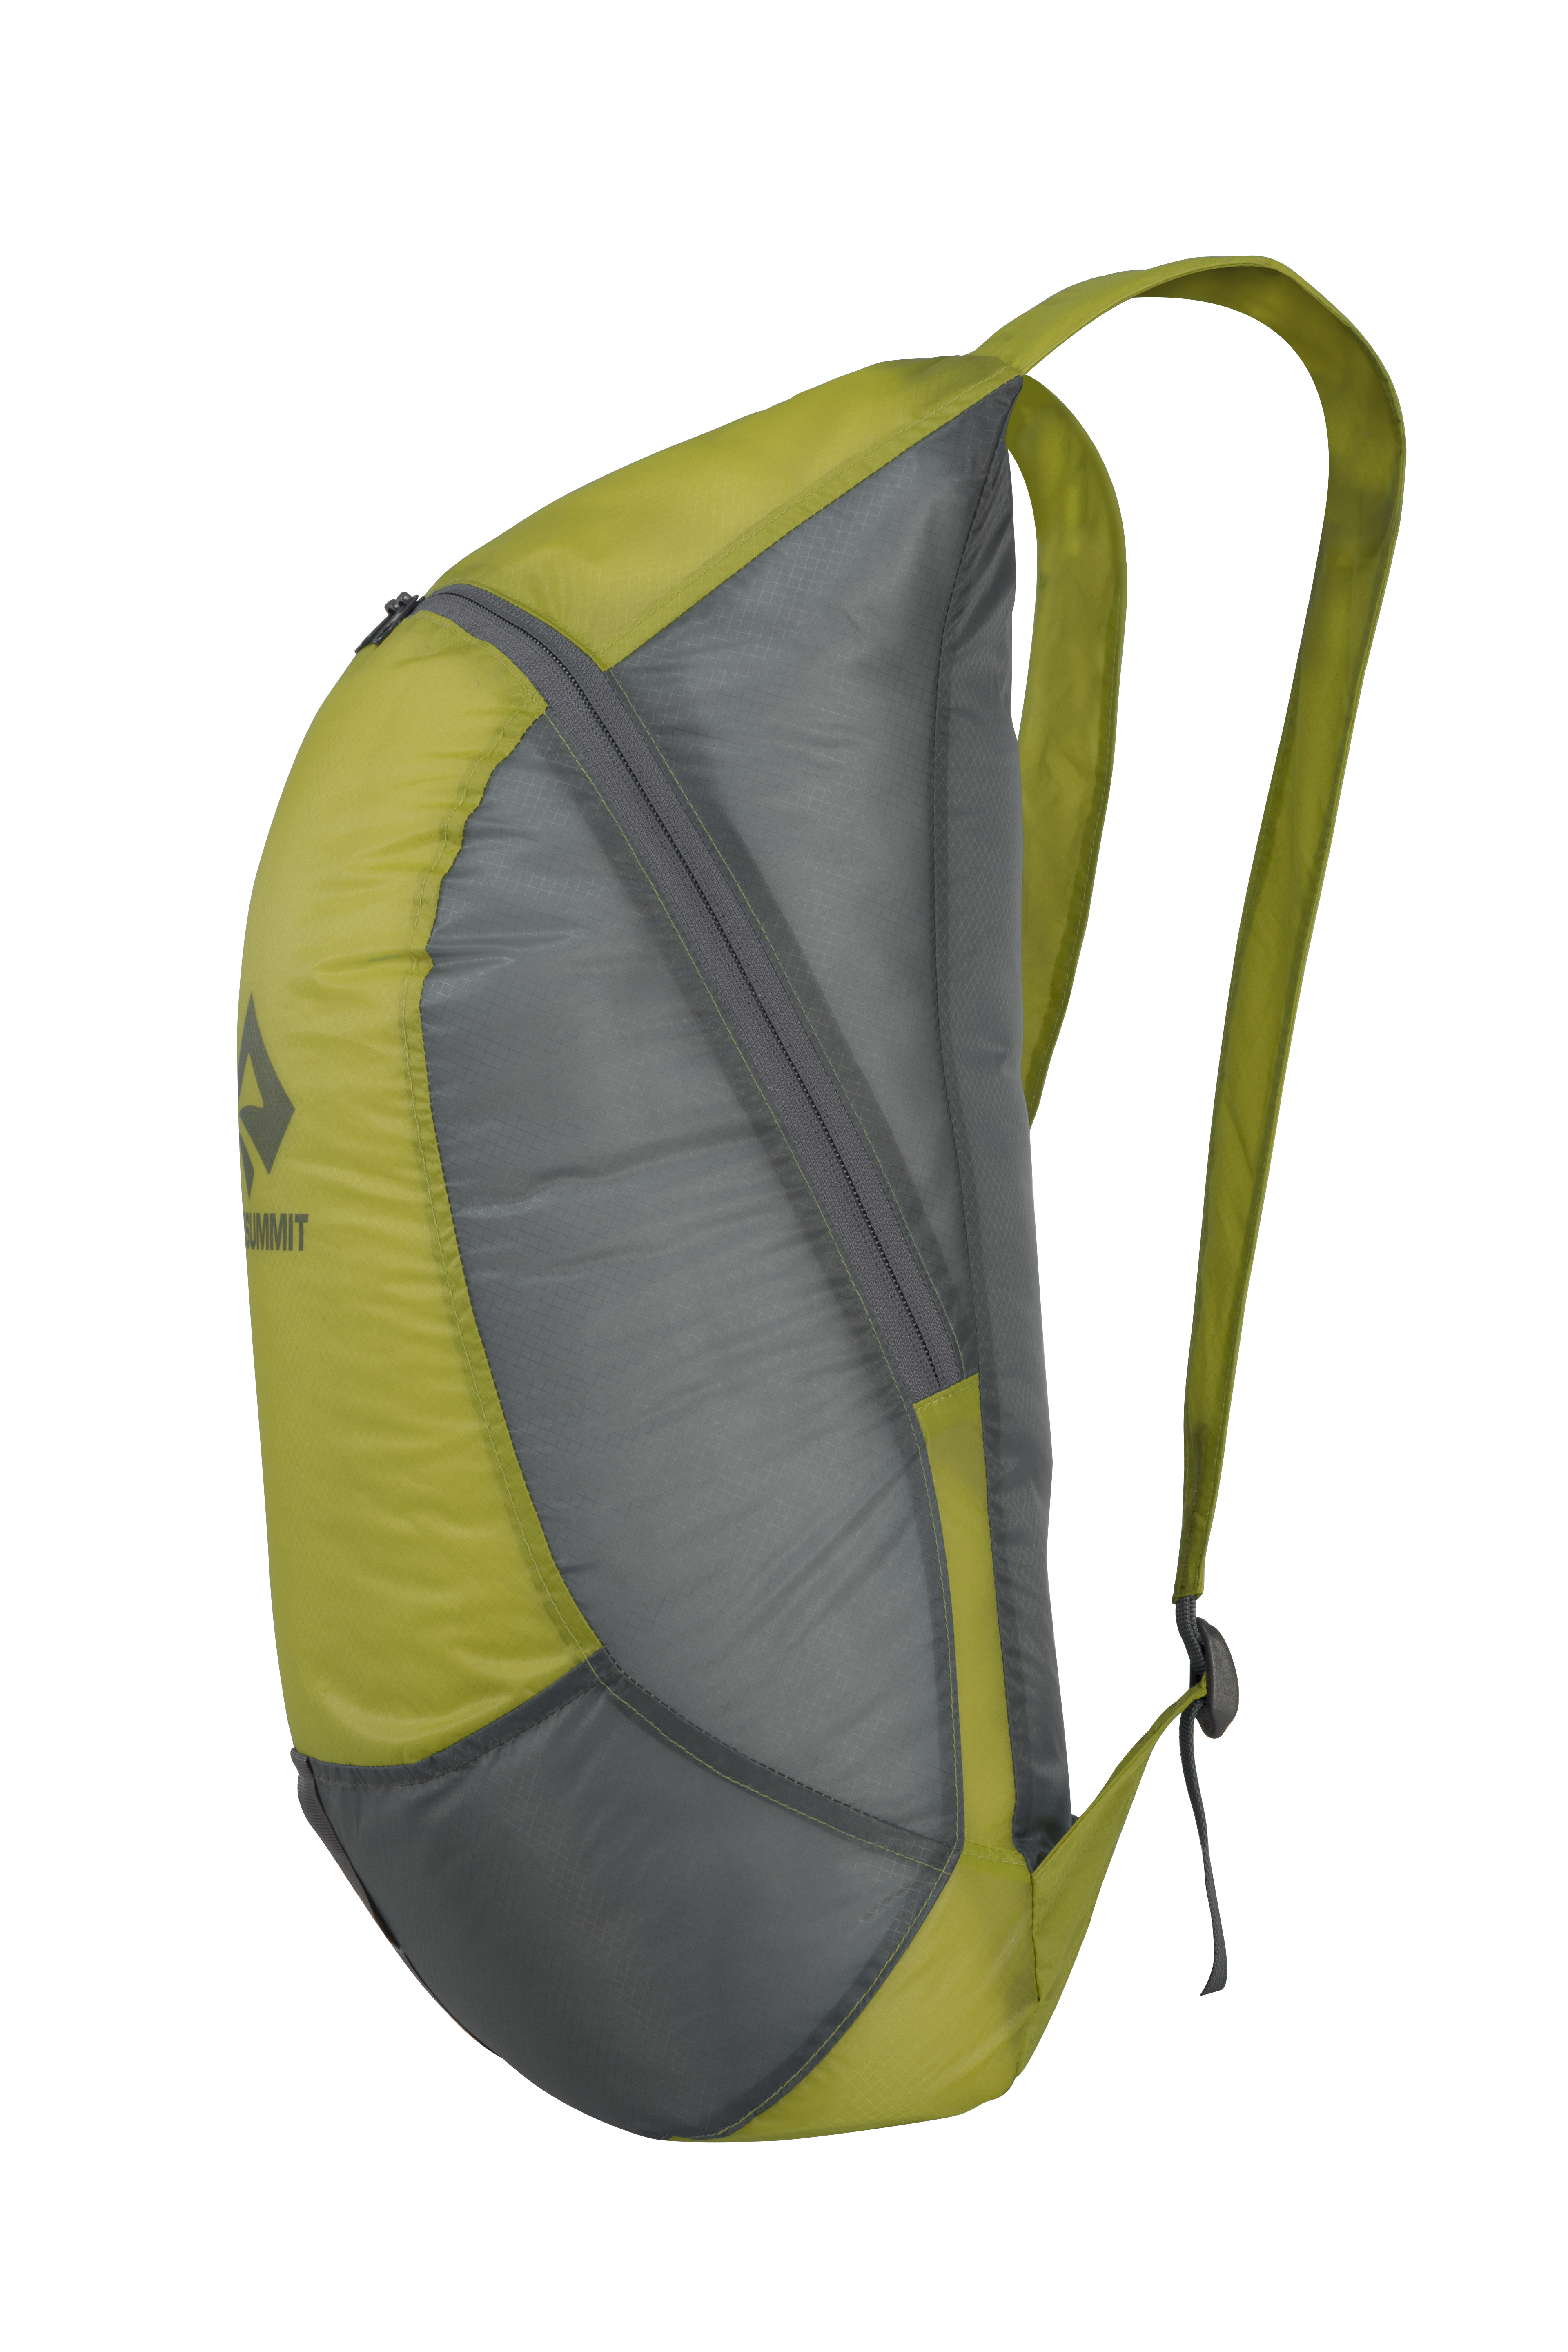 Рюкзак Ultra-Sil™ Day Pack (Lime) Sea To Summit — фото 4